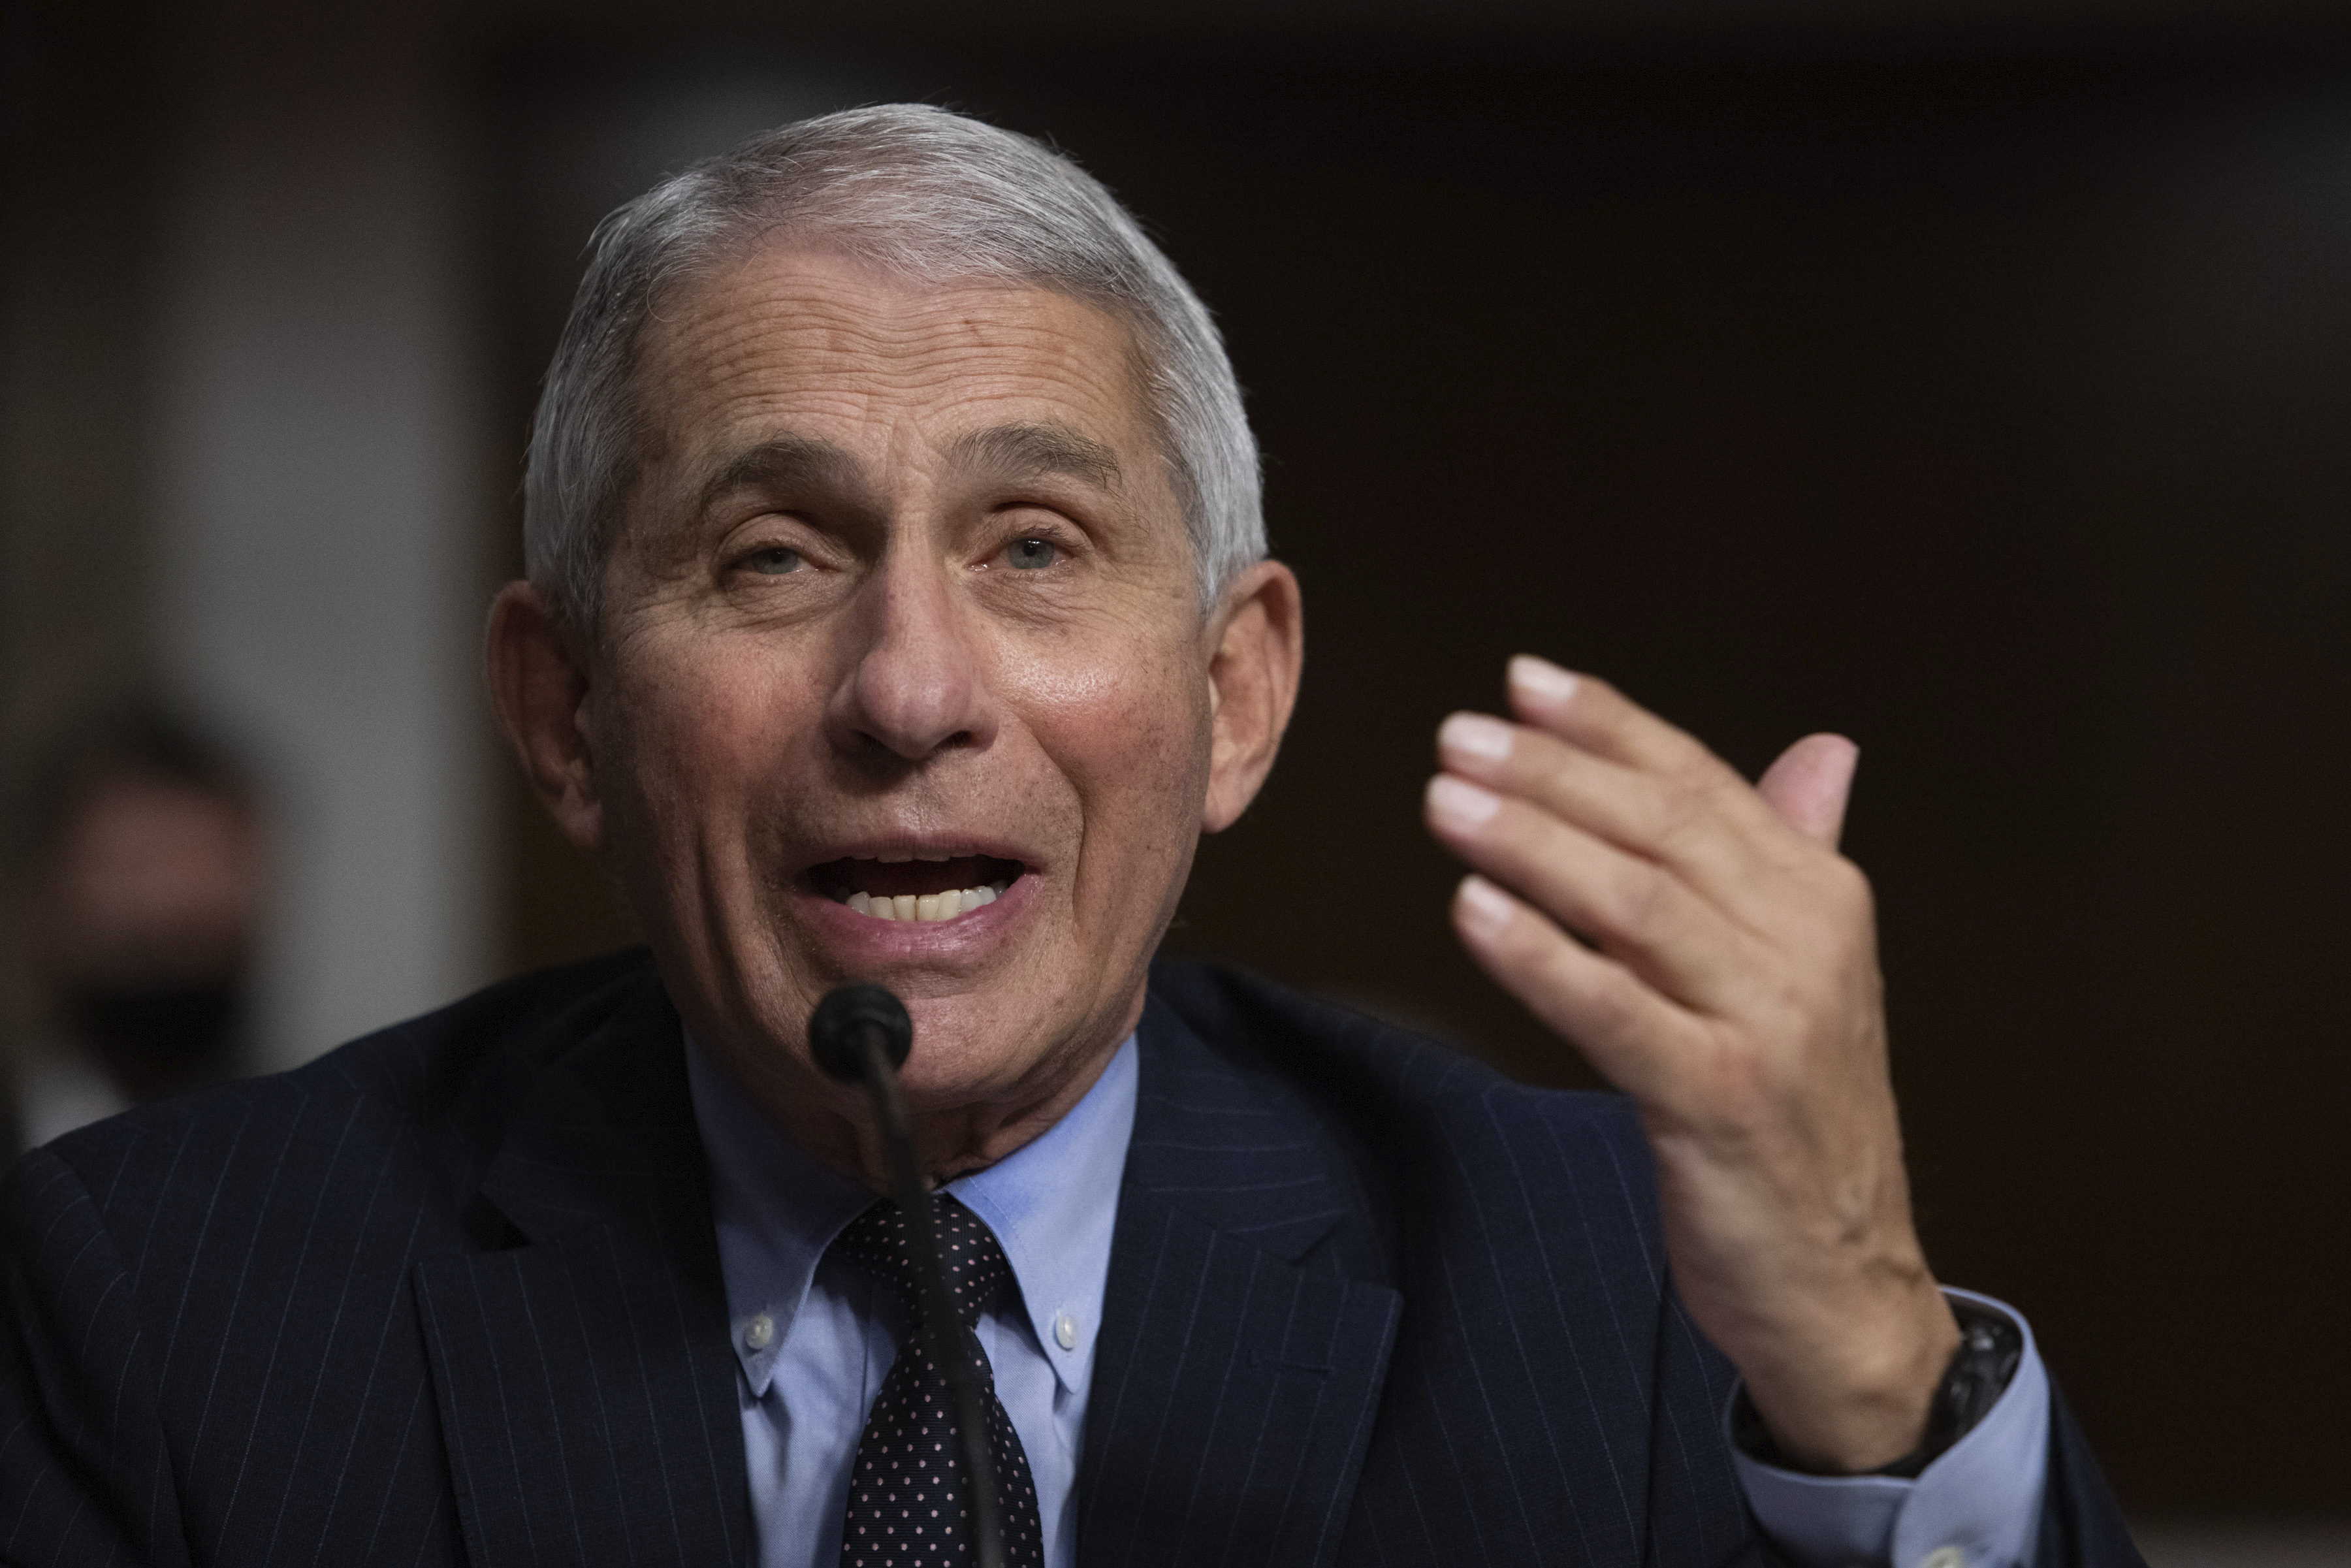 Dr. Anthony Fauci speaks to Congress.